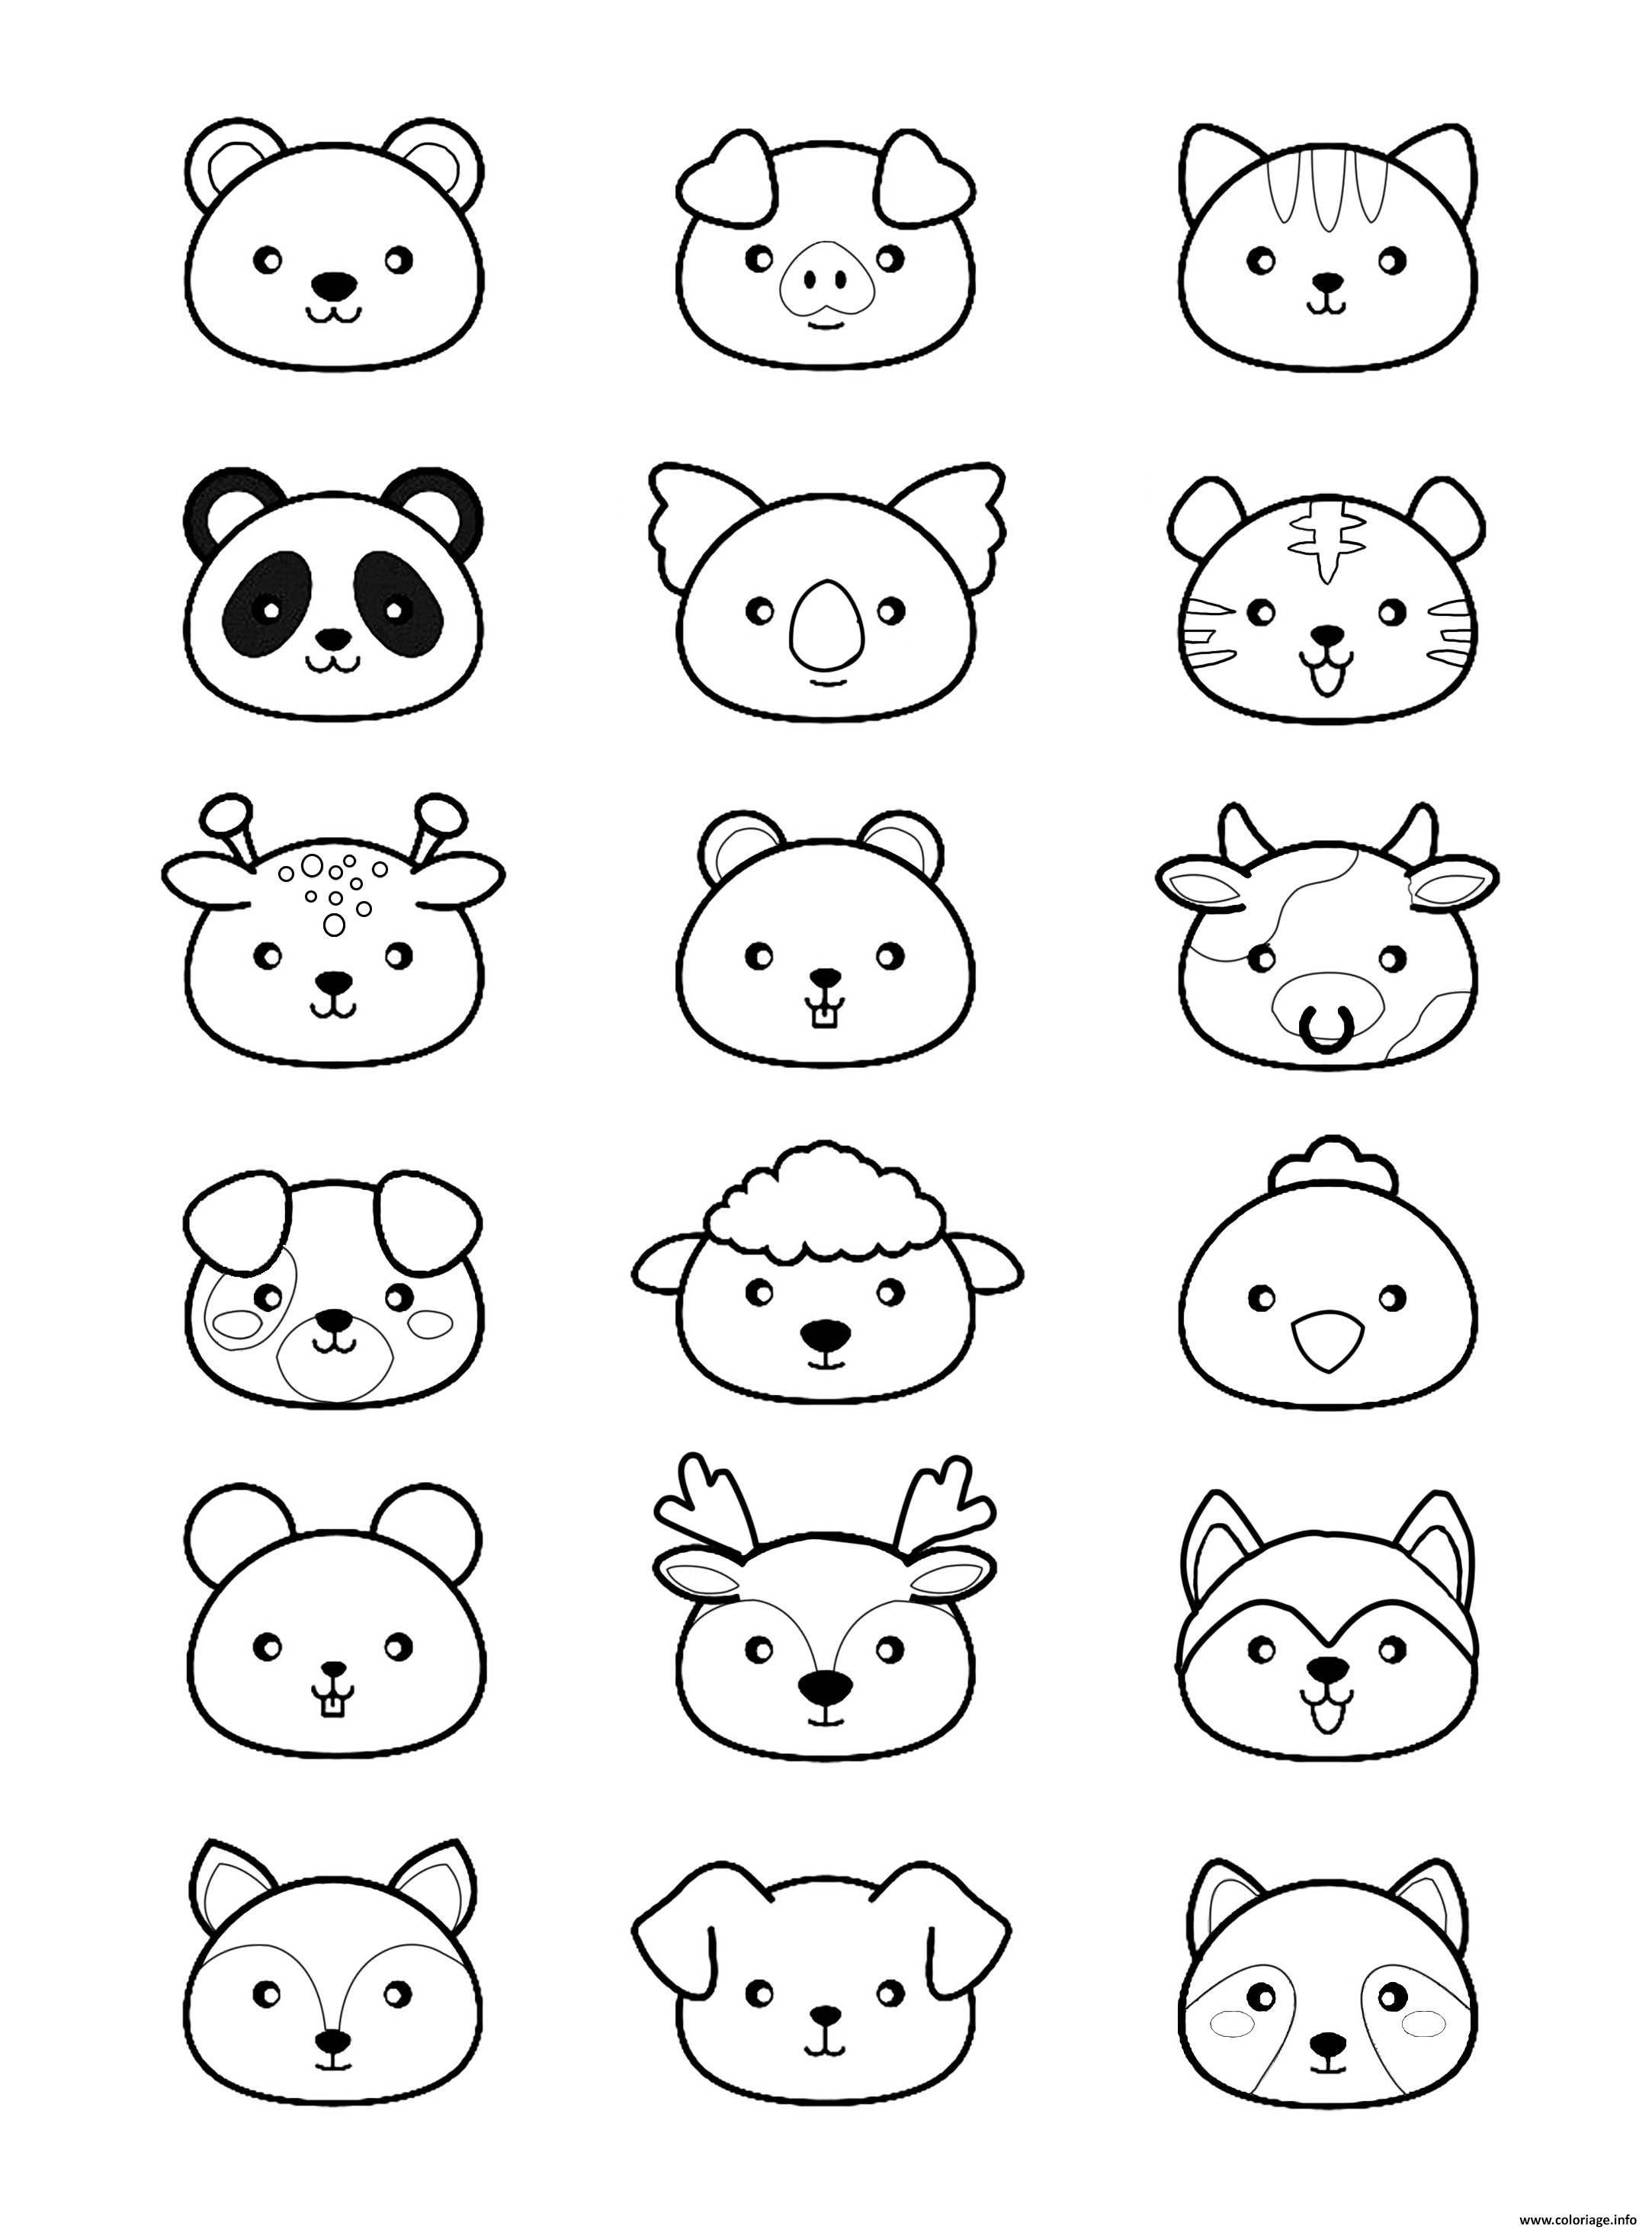 Coloriage Animaux Kawaii à Imprimer Crafts For Kids En